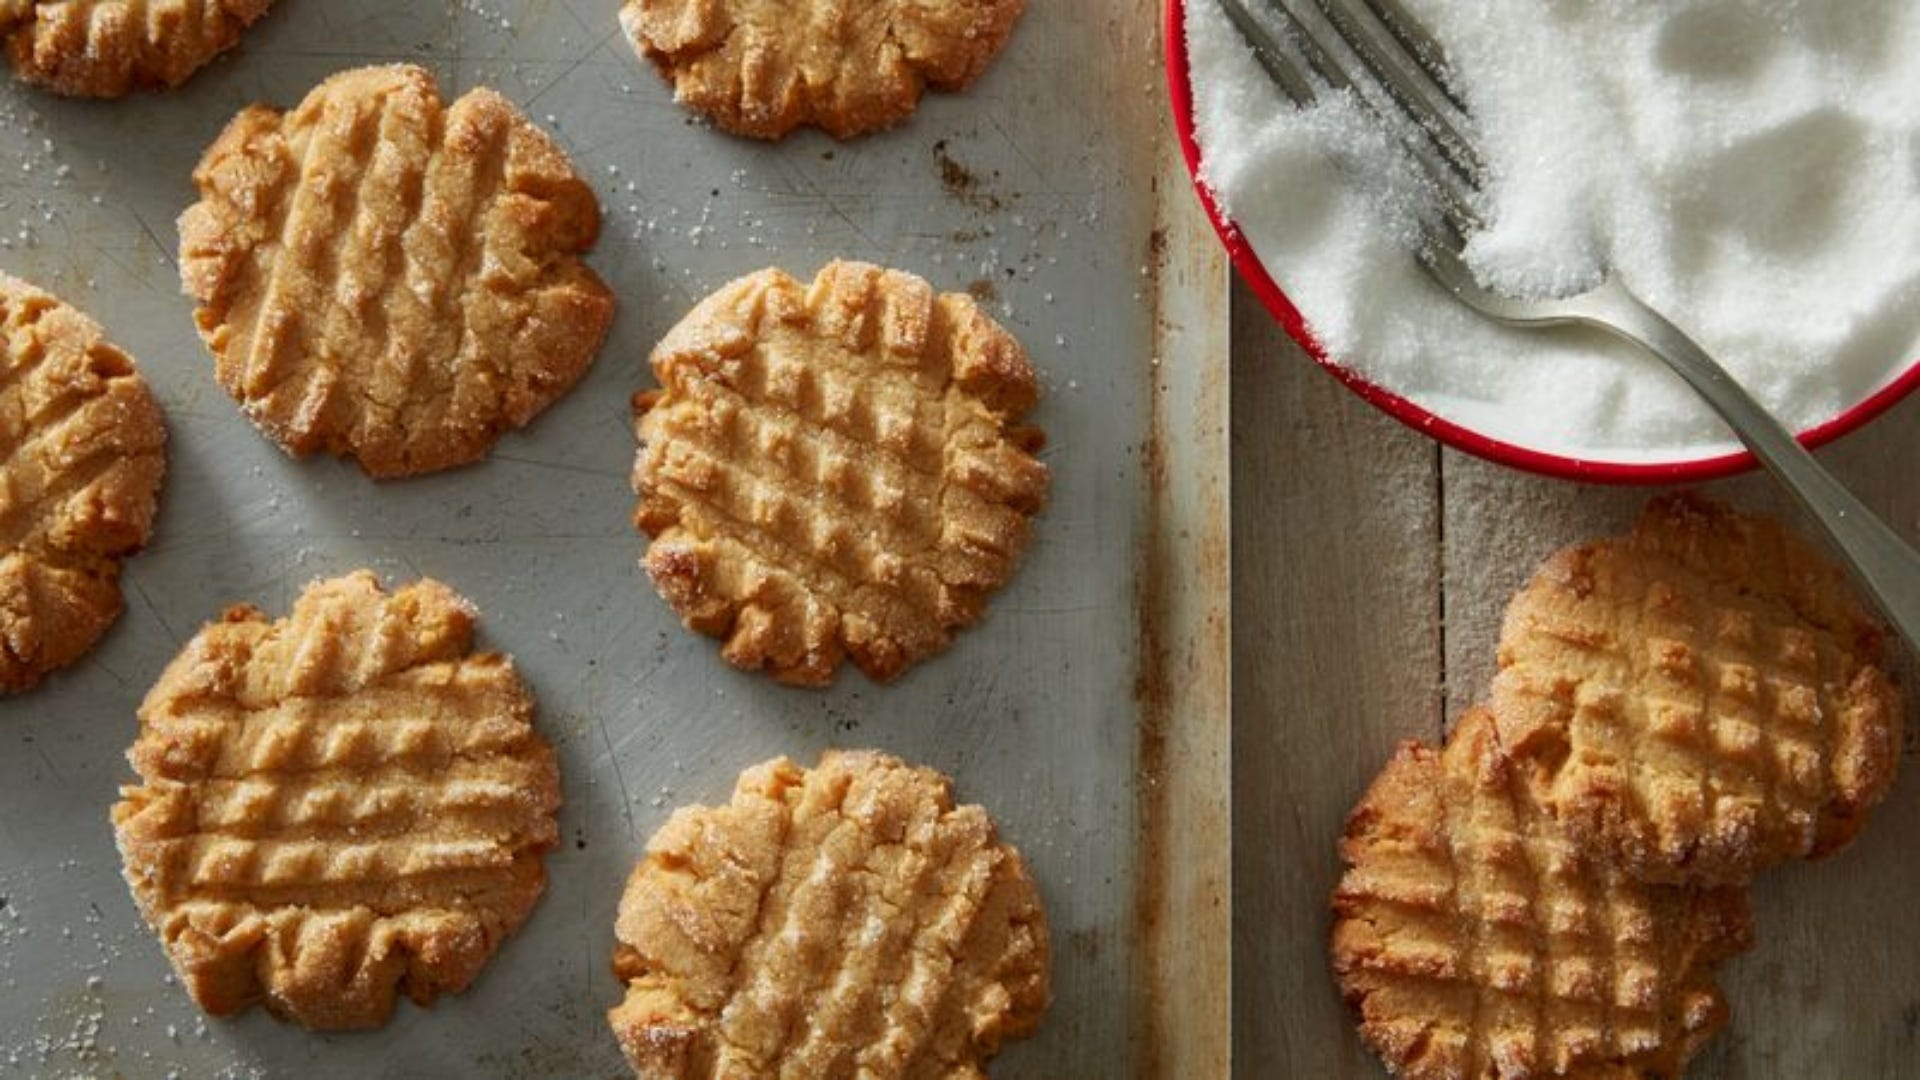 Peanut butter cookies on a tray.